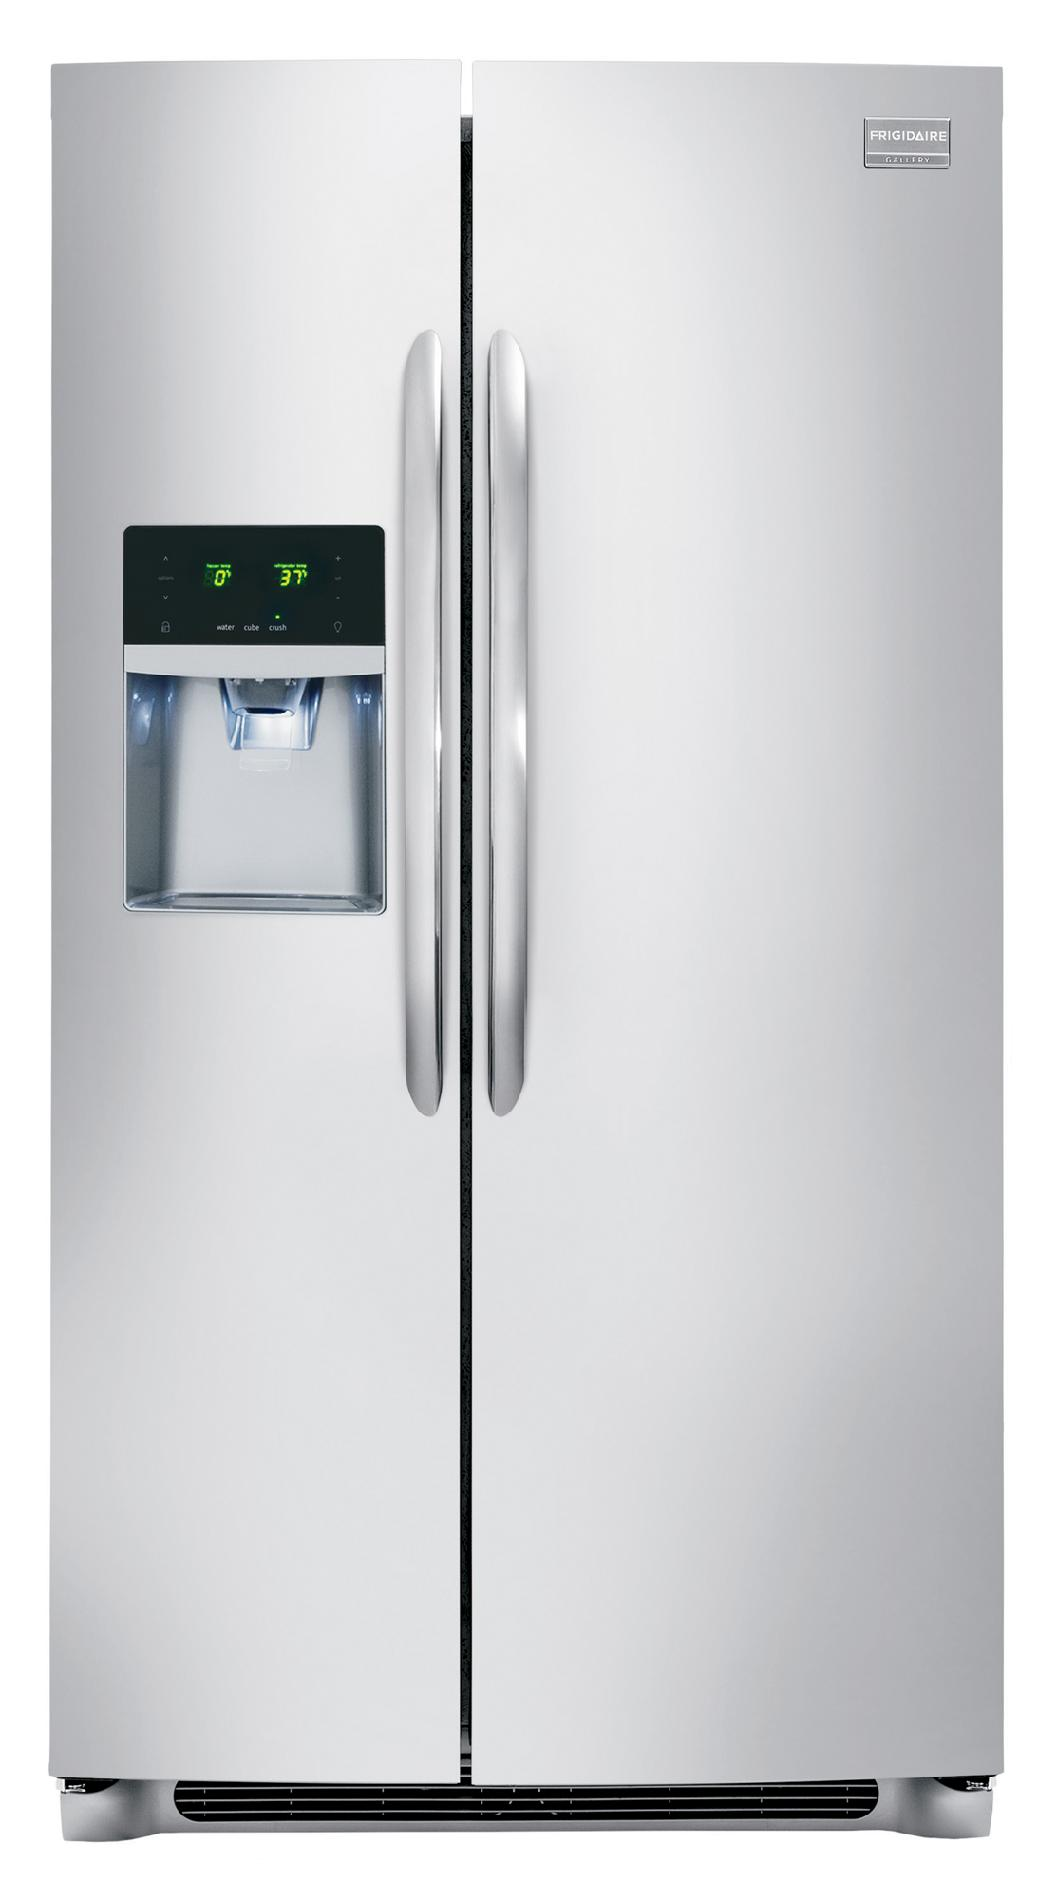 Frigidaire Gallery FGHC2331PF 22.1 cu. ft. Side-by-Side Refrigerator - Stainless Steel